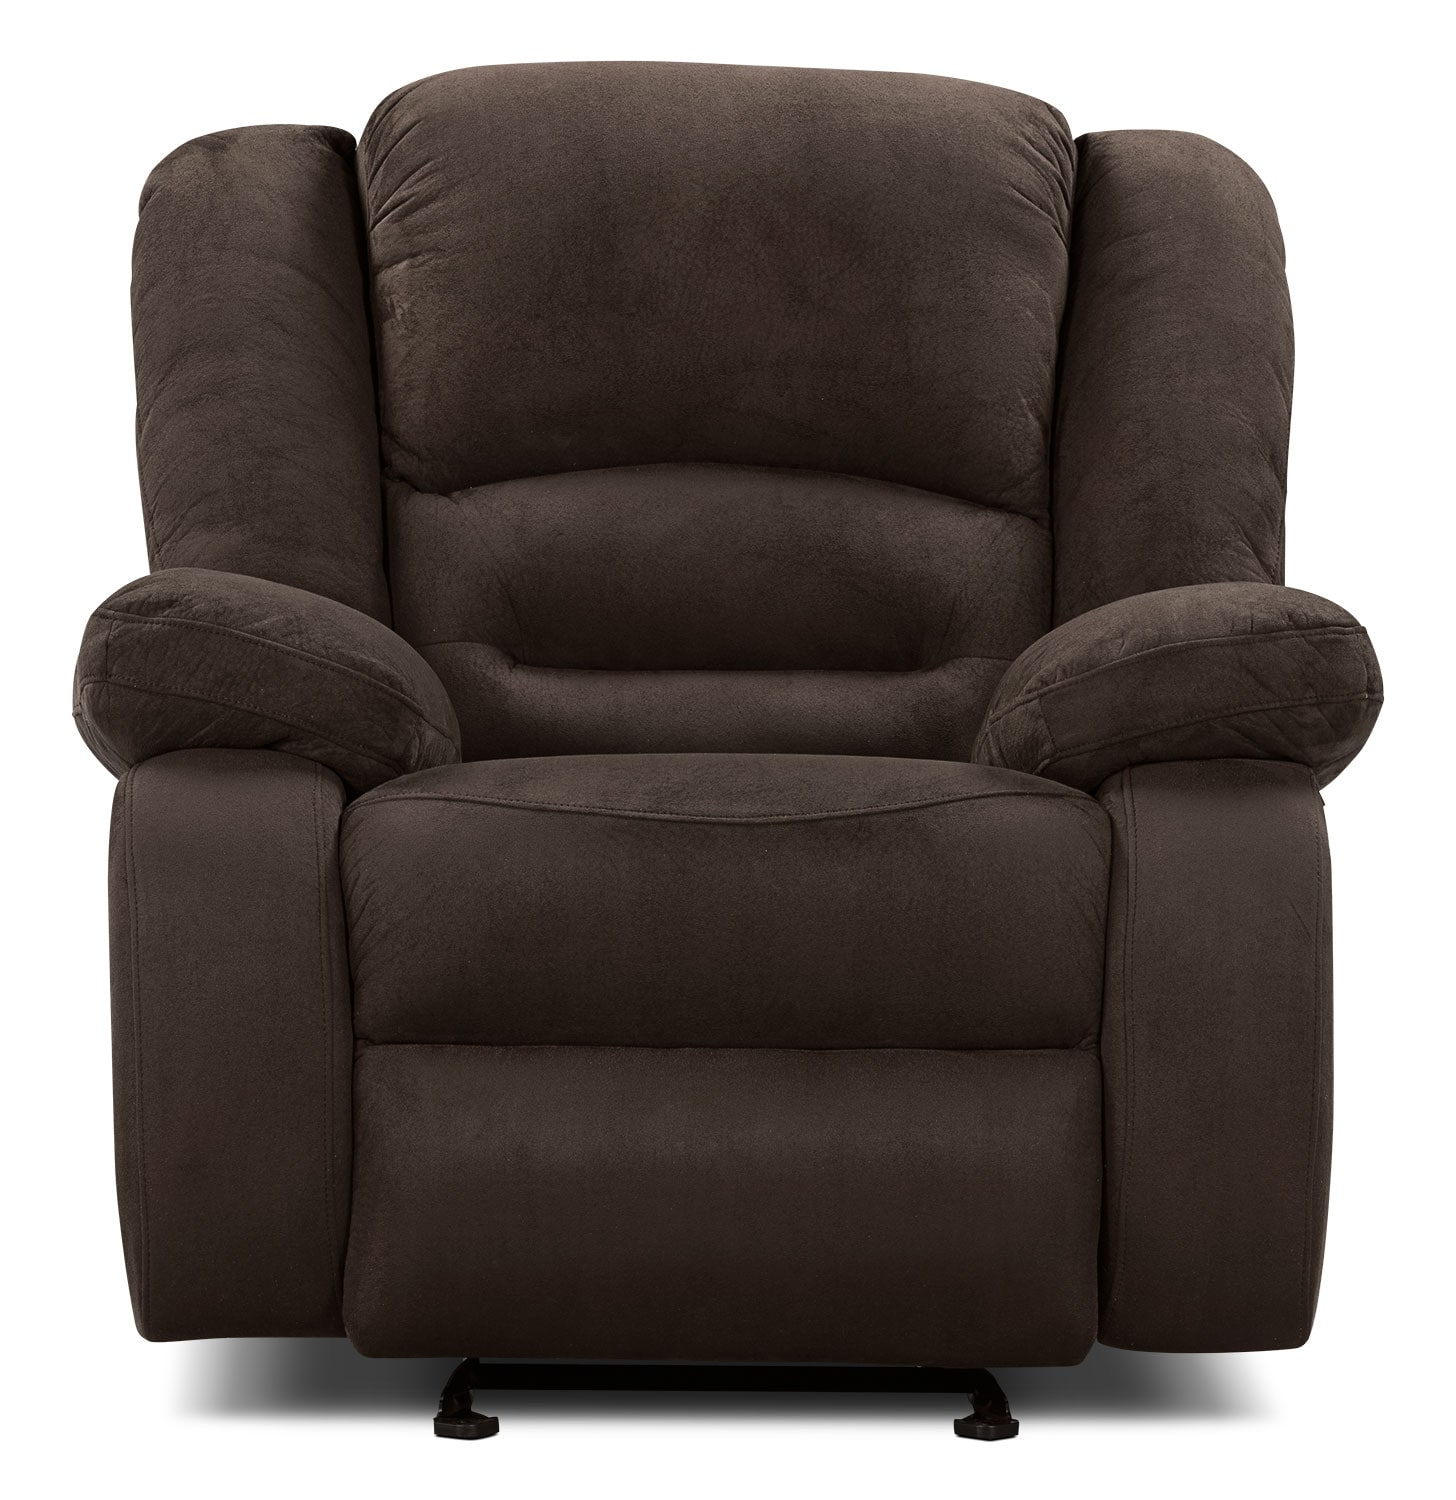 Toreno Microsuede Power Recline Chair - Cocoa